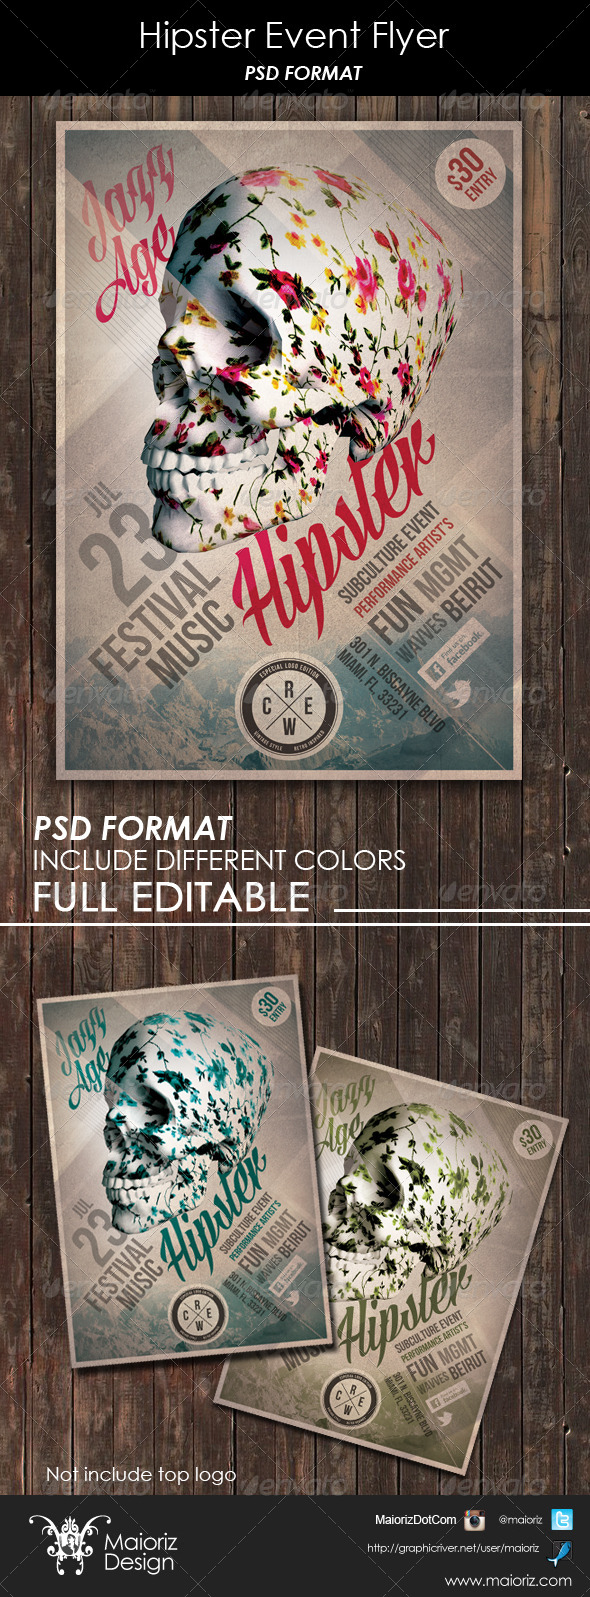 GraphicRiver Hipster Event Flyer 6343964